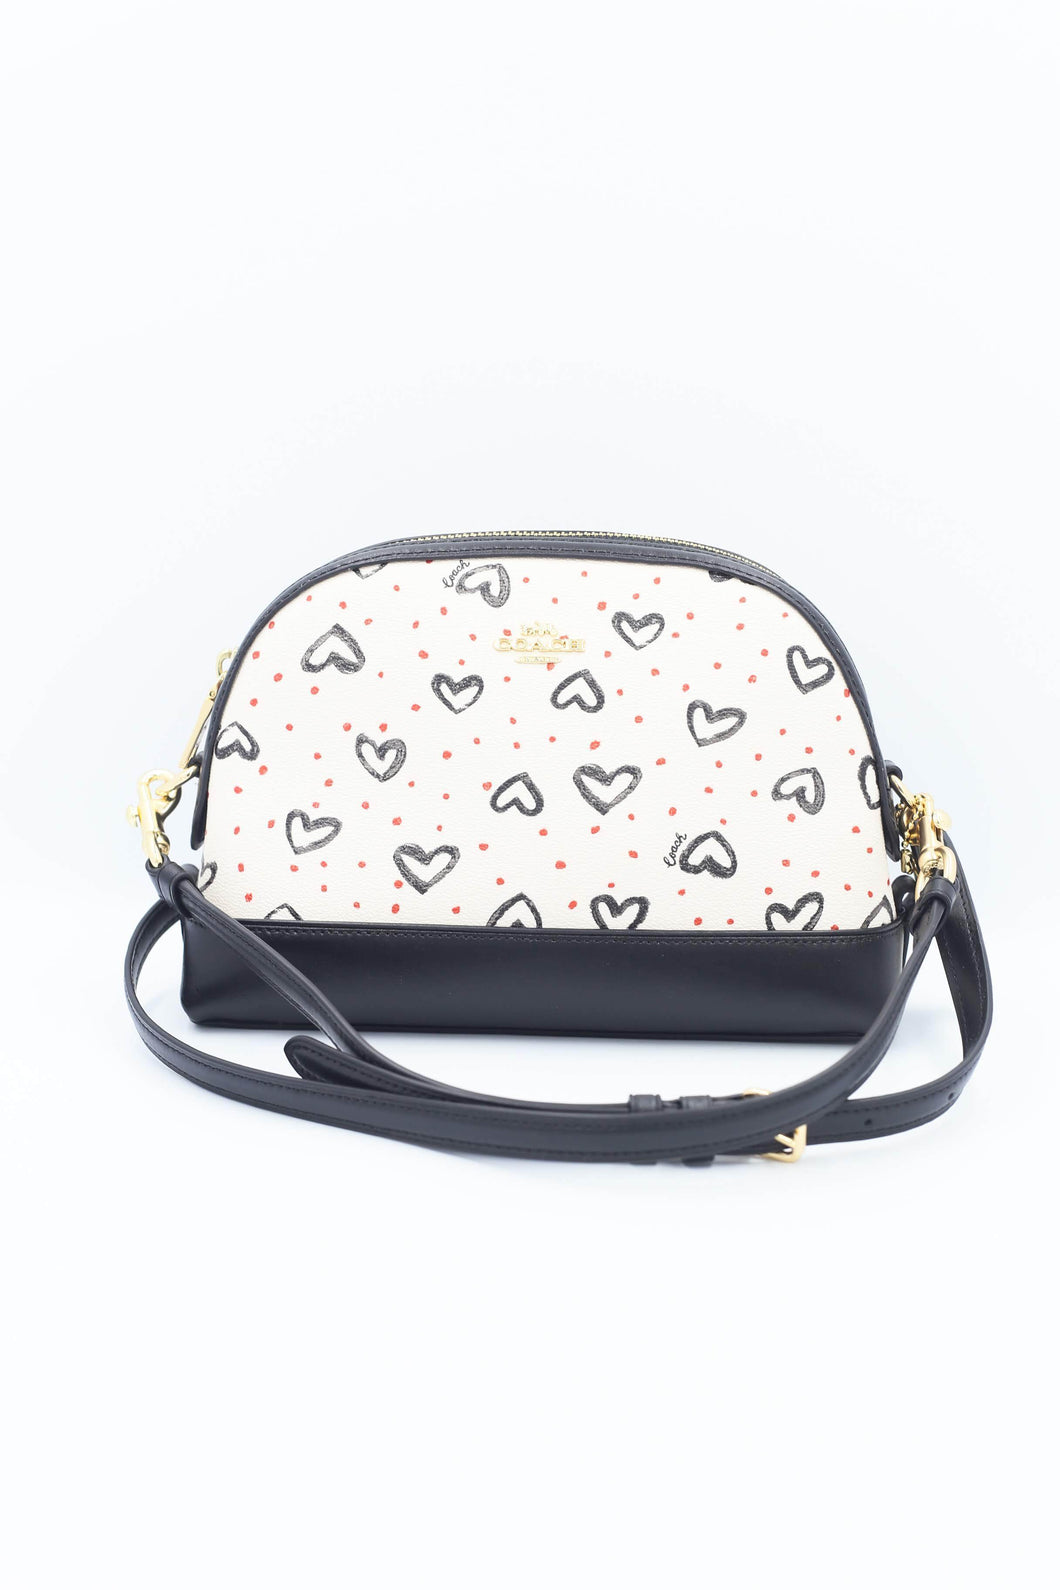 Coach Dome Crossbody Bag With Crayon Hearts Print 91152 In White Multi